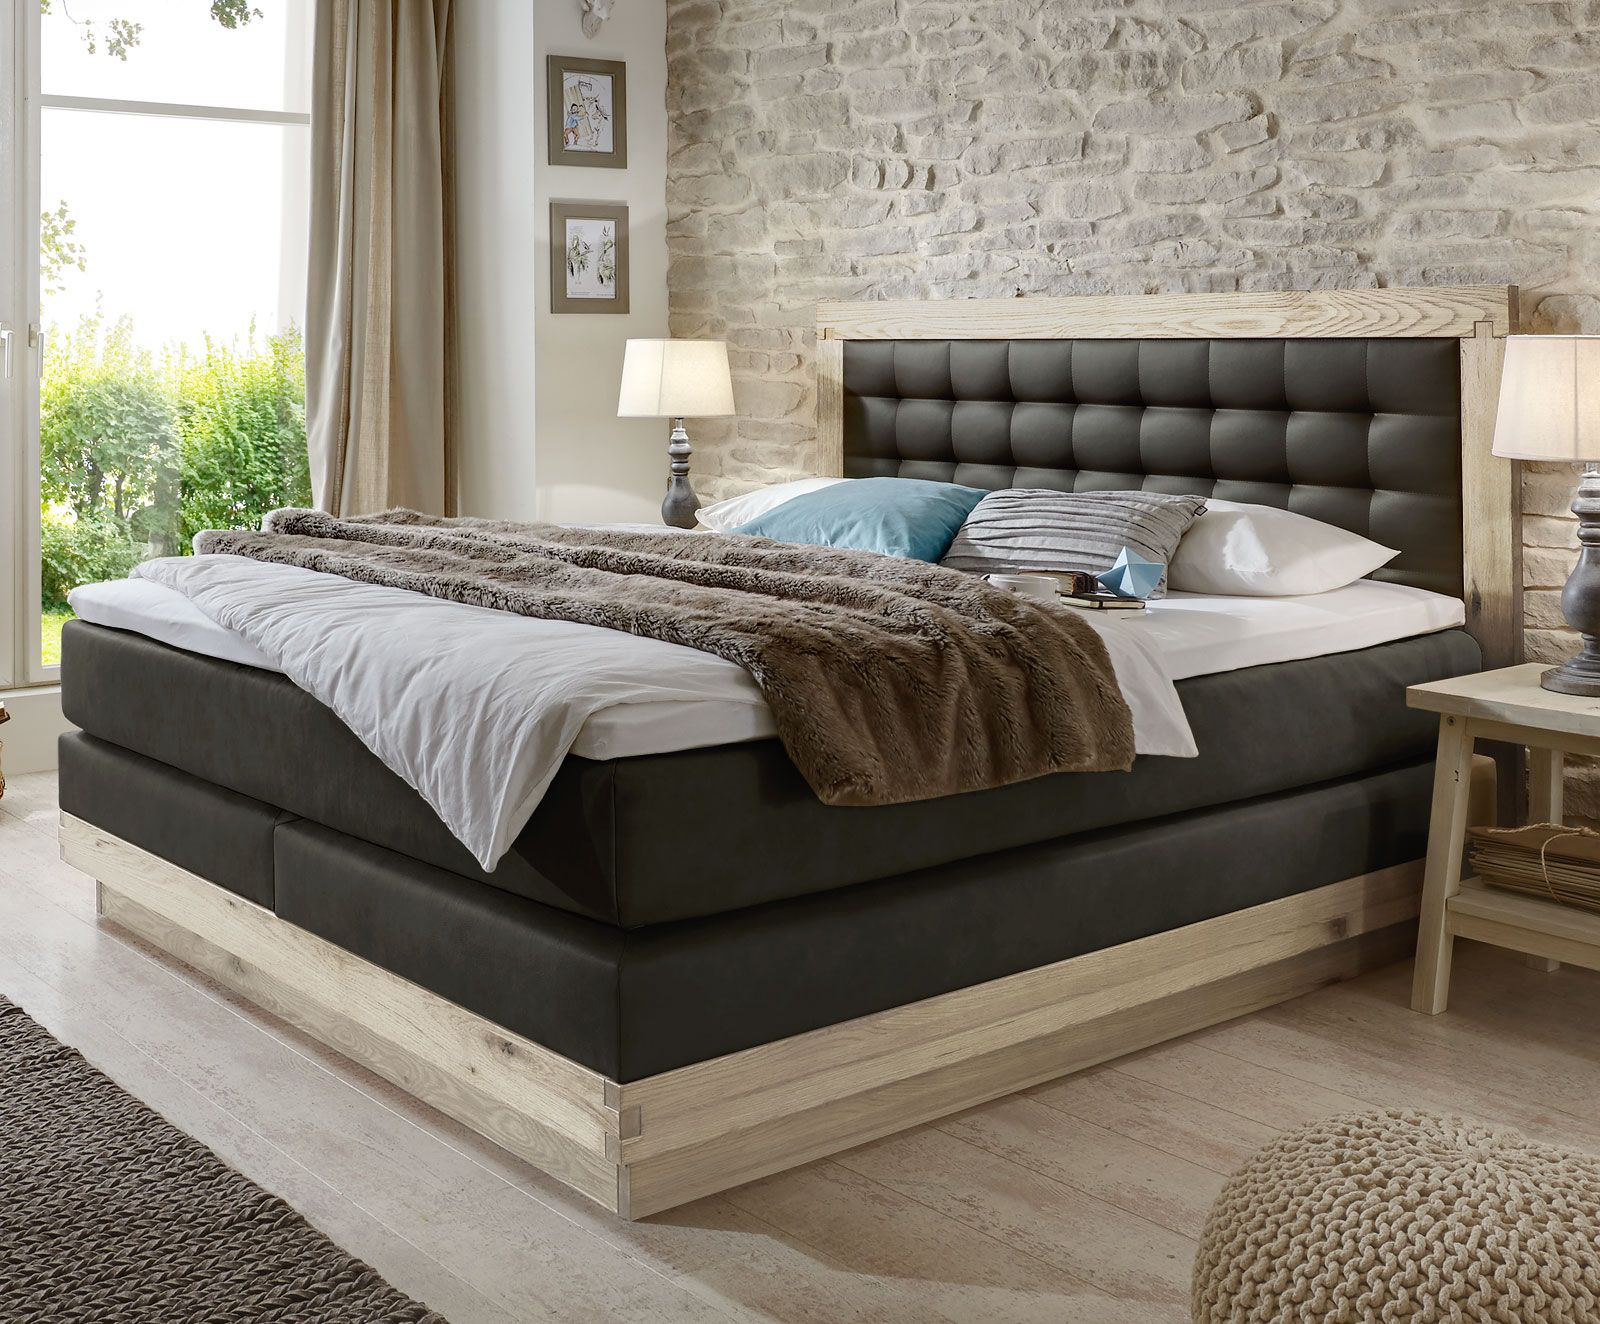 boxspringbett galicia indoor pinterest schlafzimmer bett und schlafzimmer bett. Black Bedroom Furniture Sets. Home Design Ideas